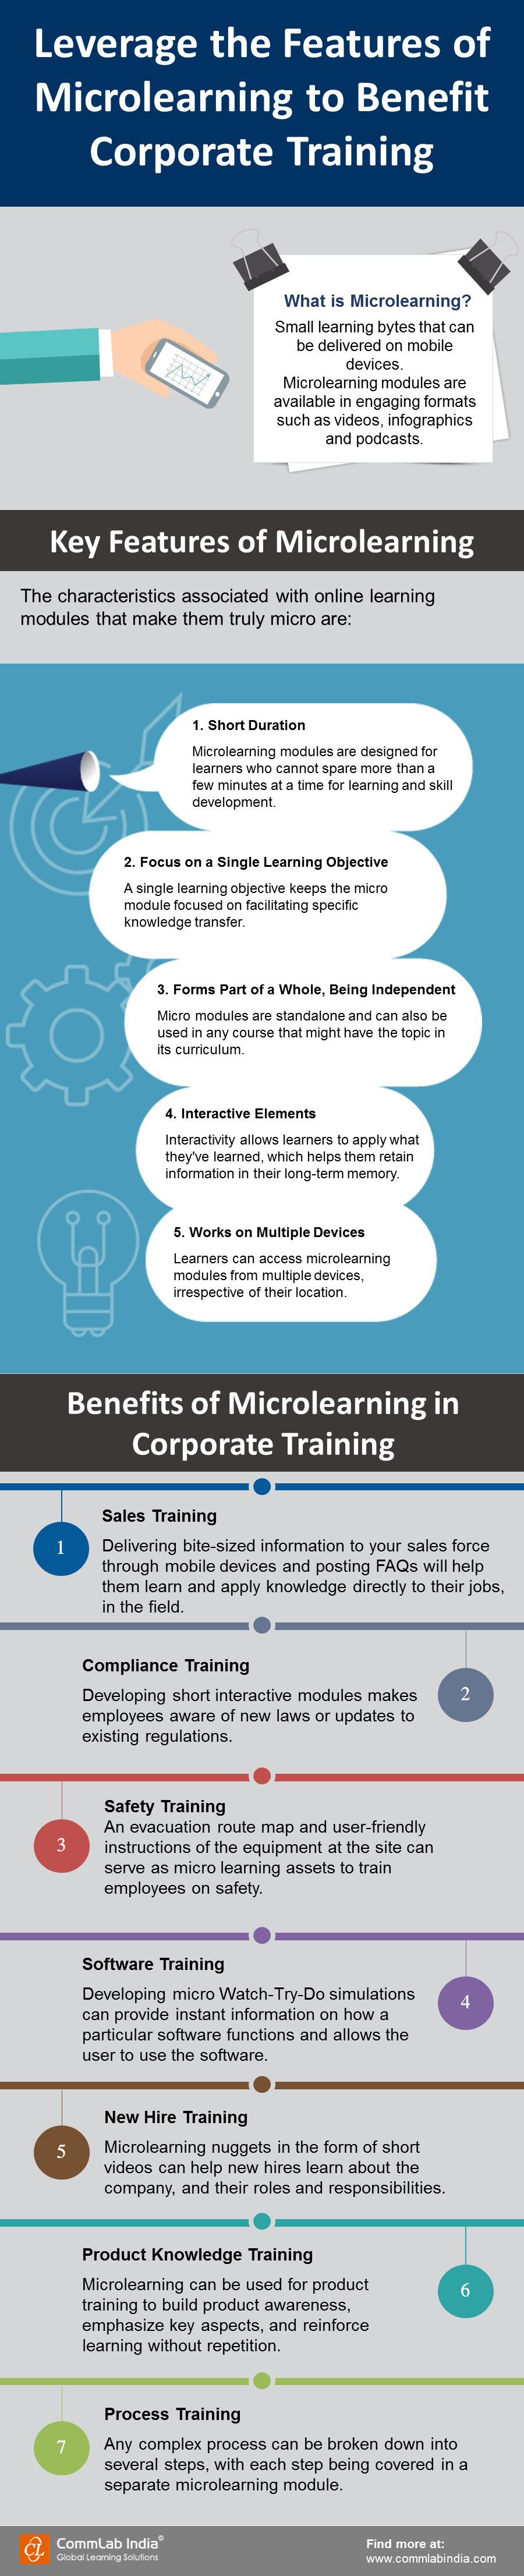 Leverage the Features of Microlearning to Benefit Corporate Training [Infographic]